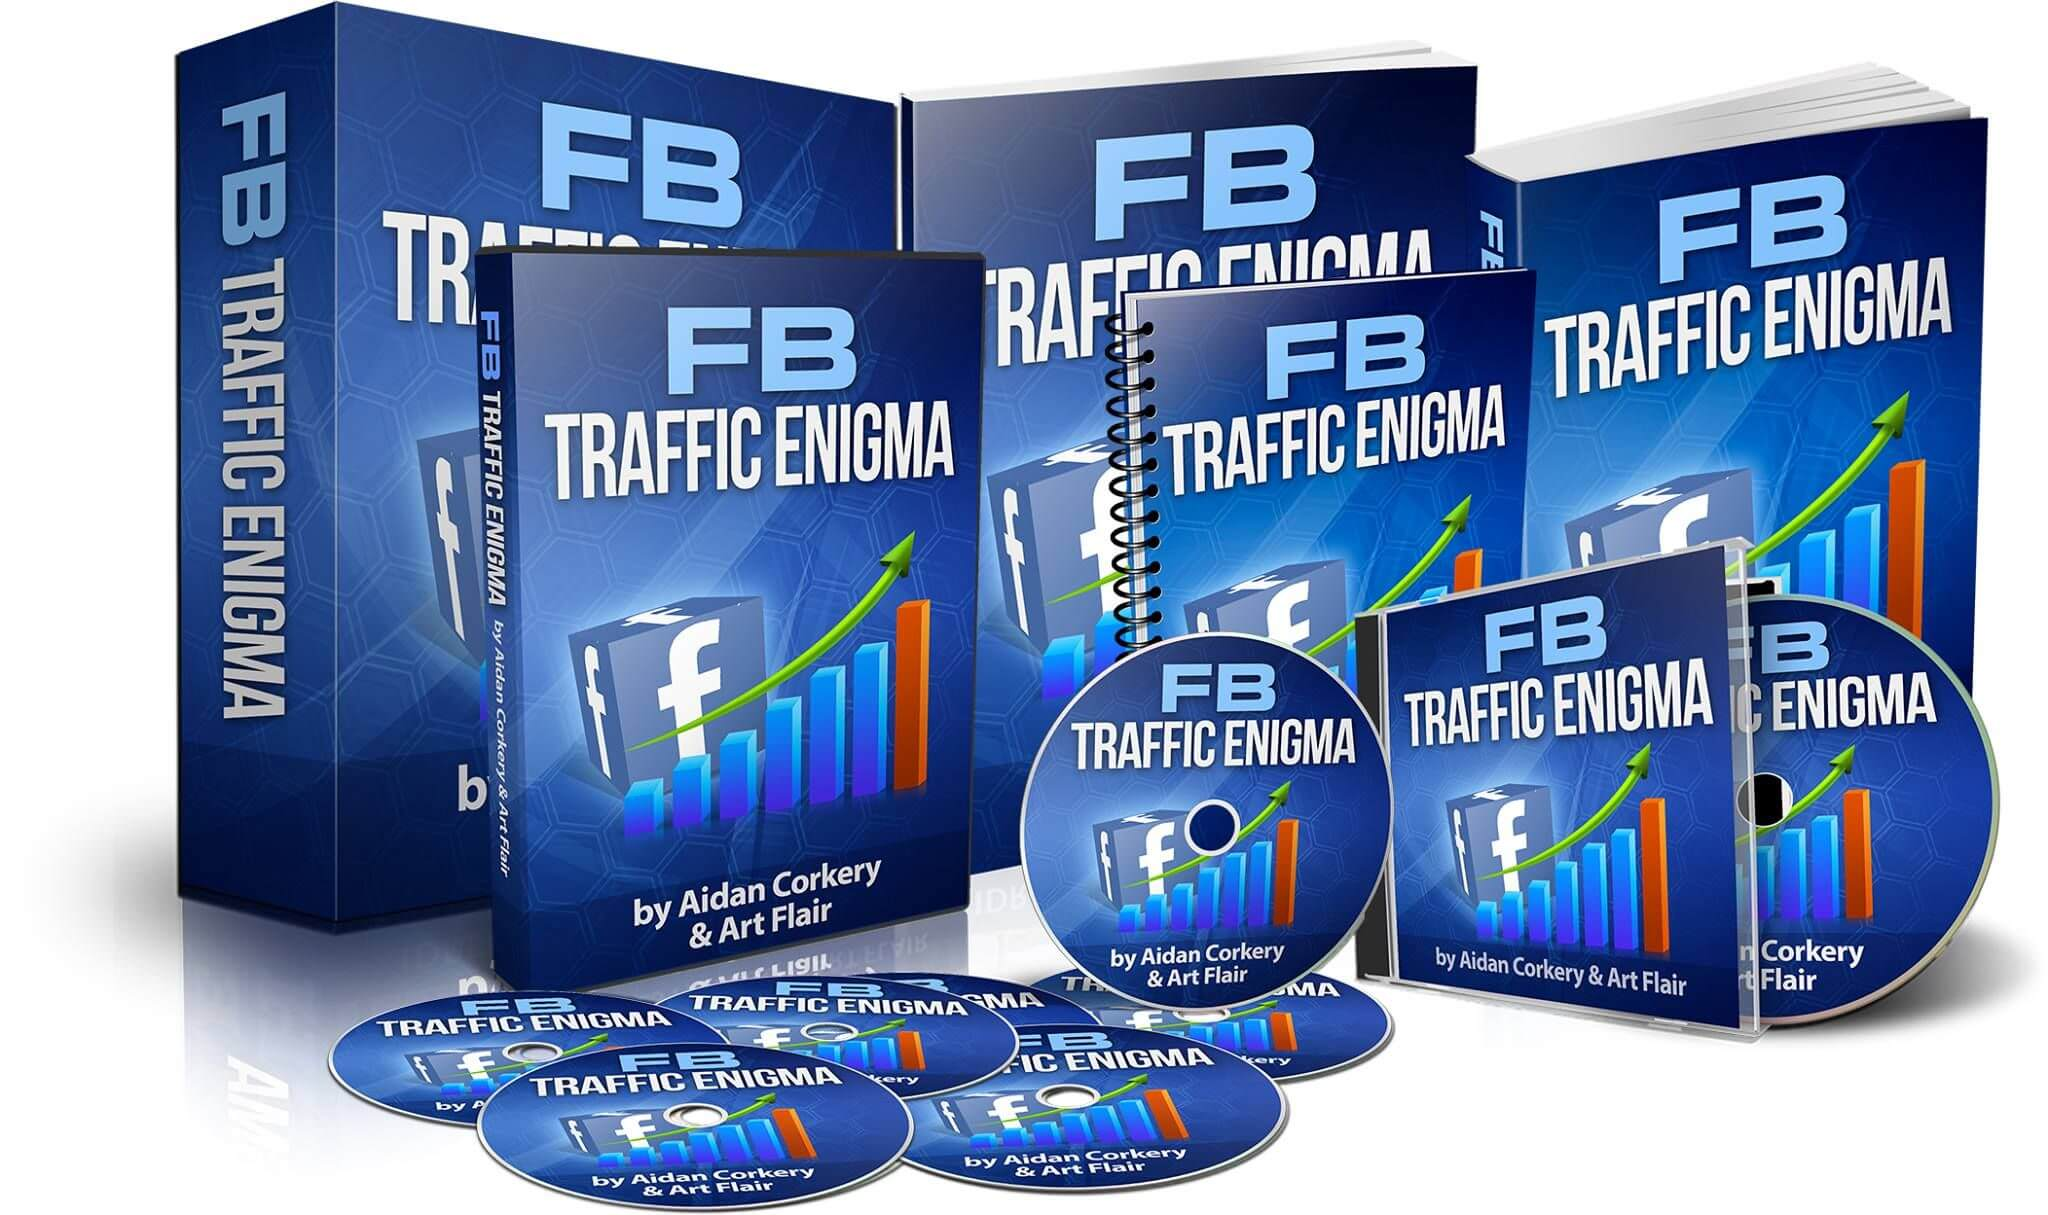 12. FB Traffic Enigma